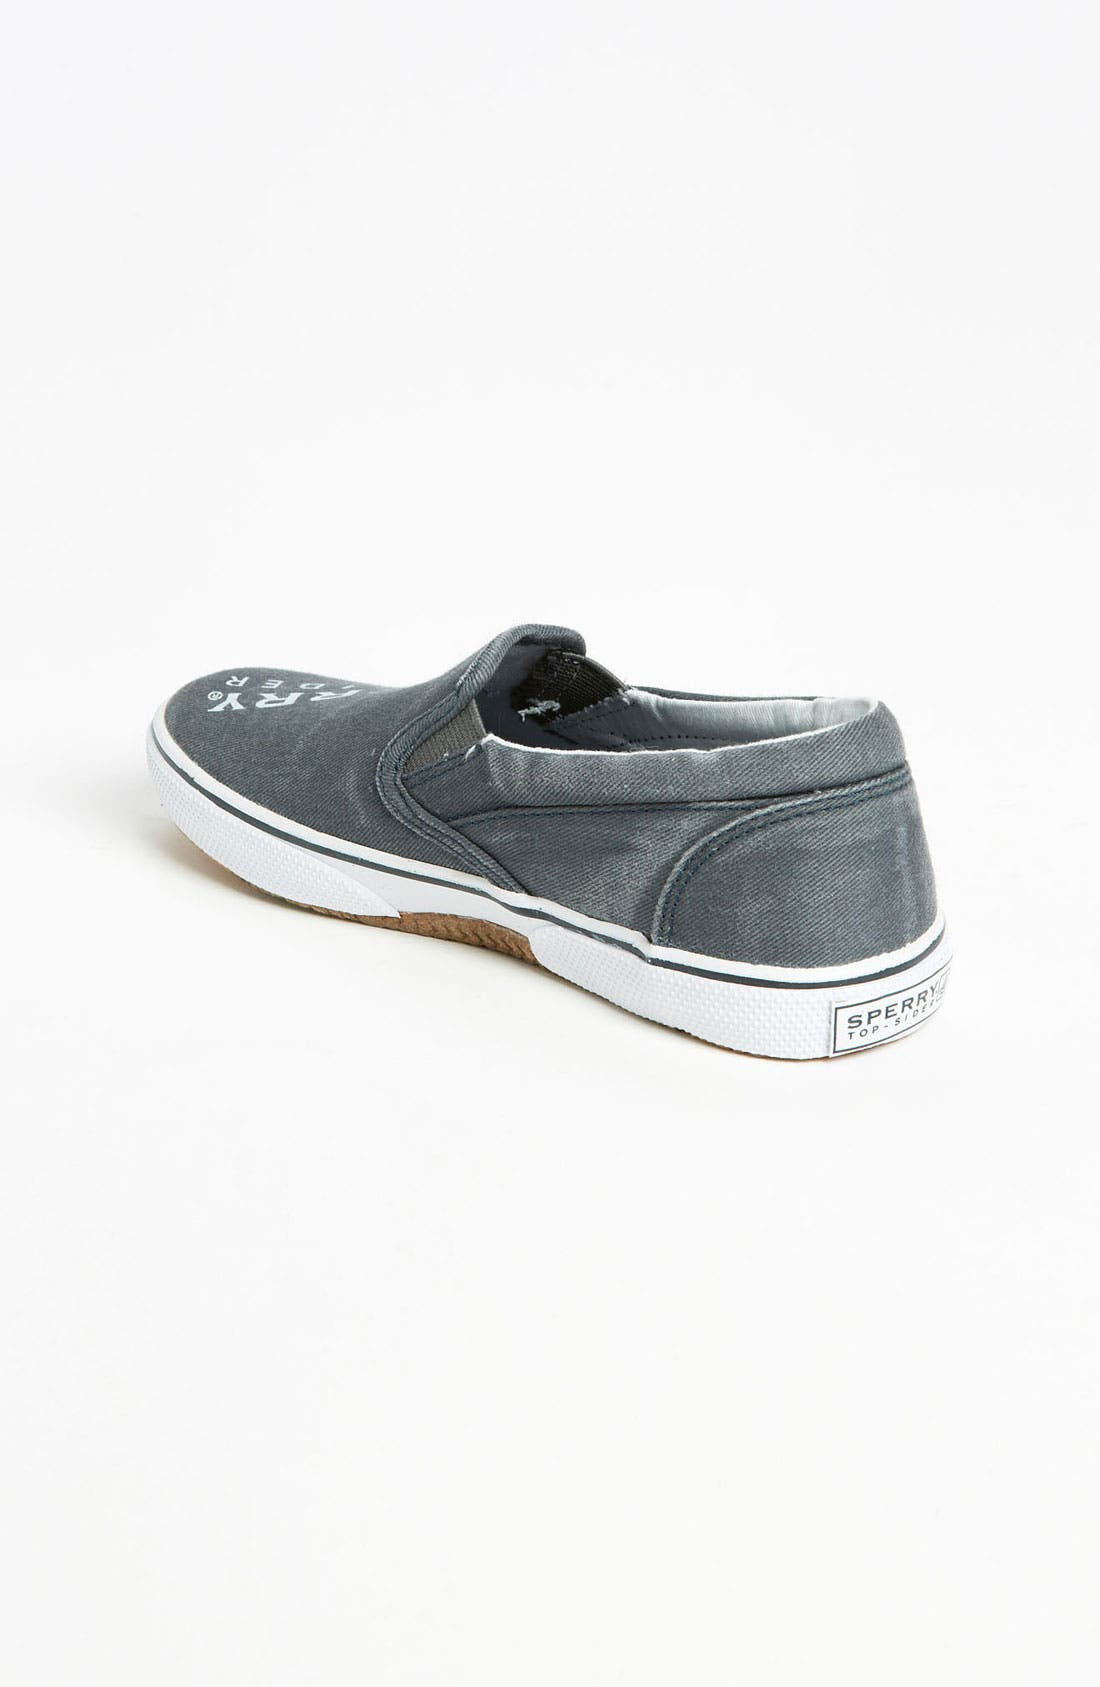 Alternate Image 2  - Sperry Top-Sider® Kids 'Halyard' Sneaker (Little Kid & Big Kid)